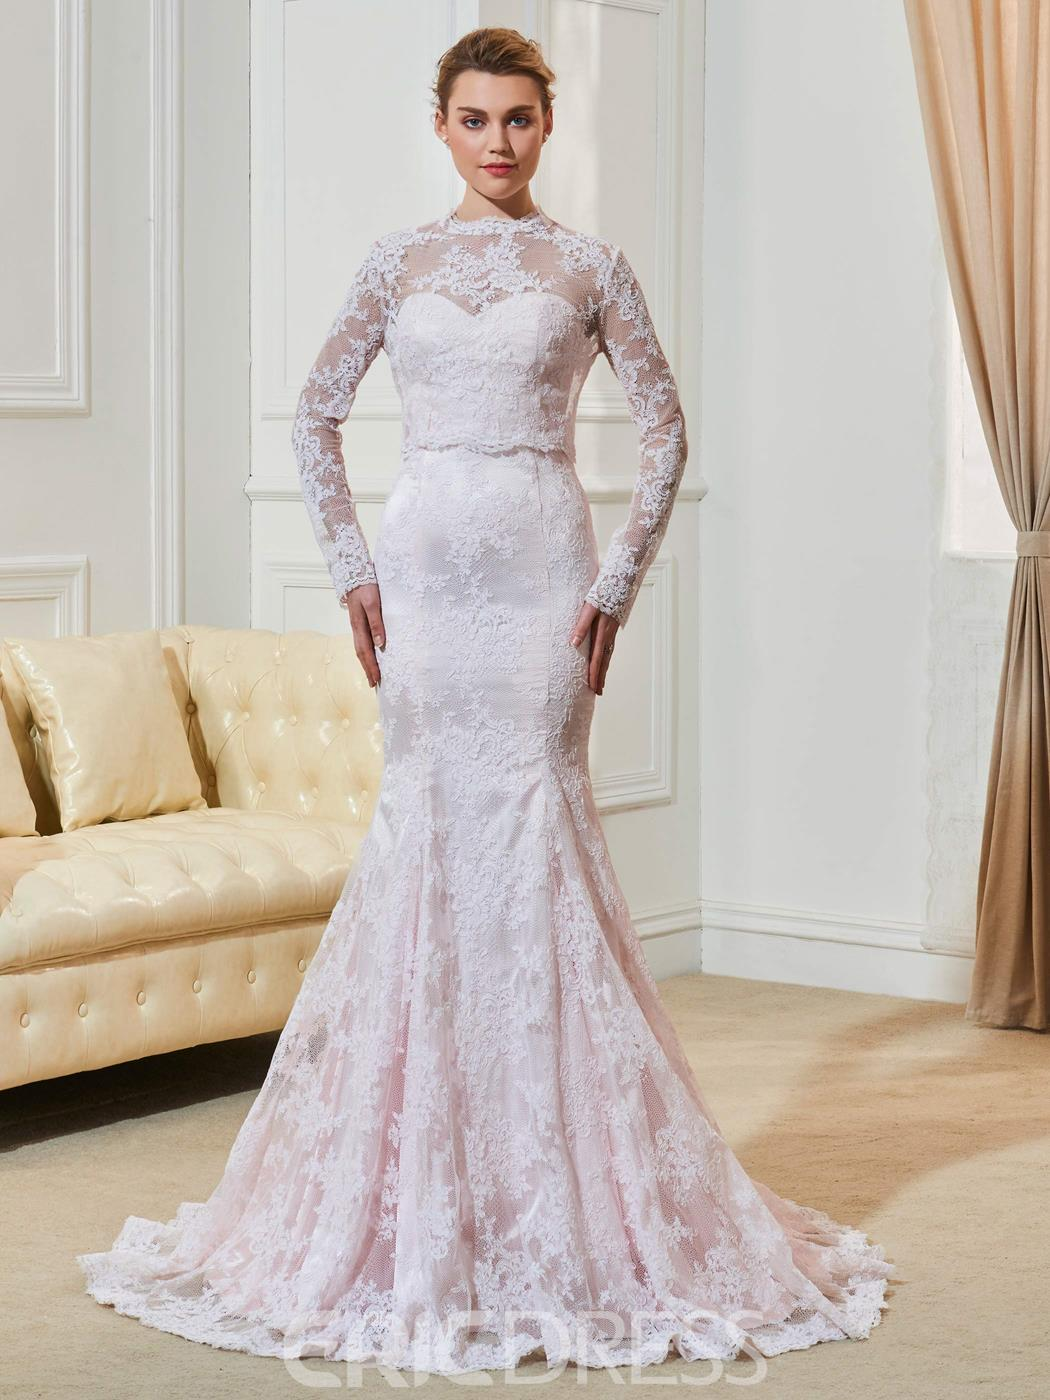 Ericdress fancy lace mermaid long sleeves pink wedding dress junglespirit Images